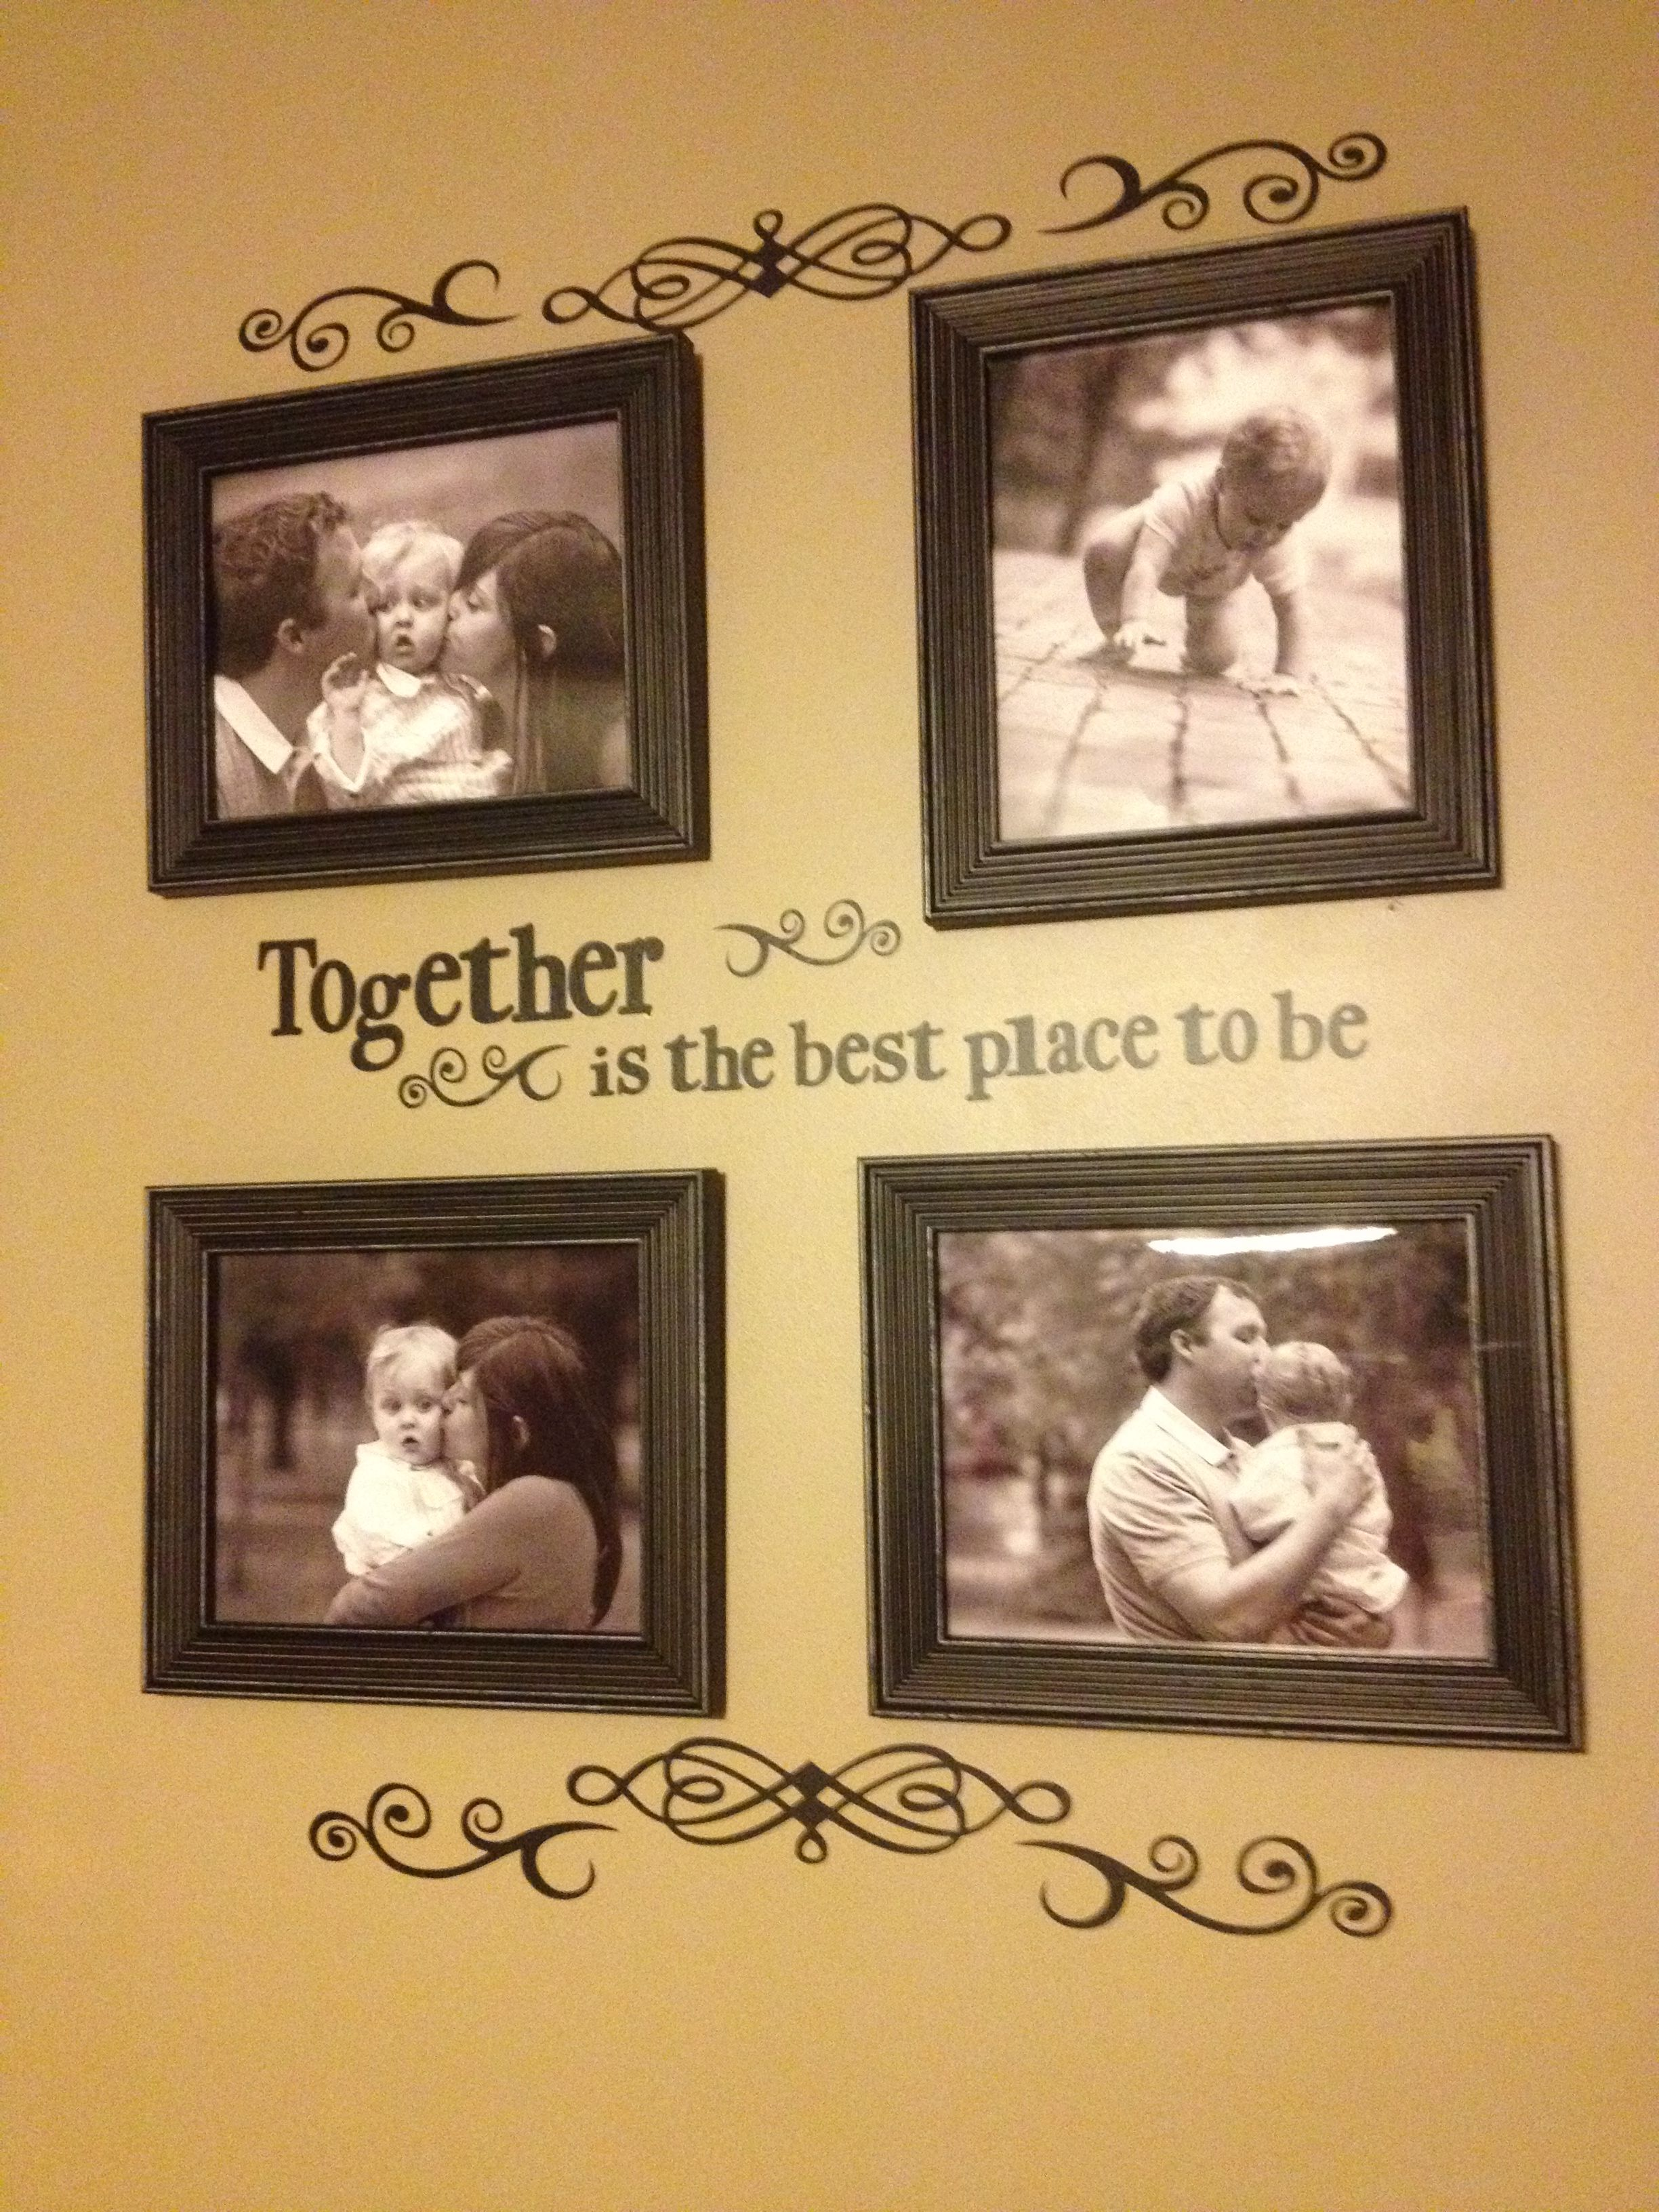 Fantastic Wall Grouping Ideas Pictures Inspiration - The Wall Art ...